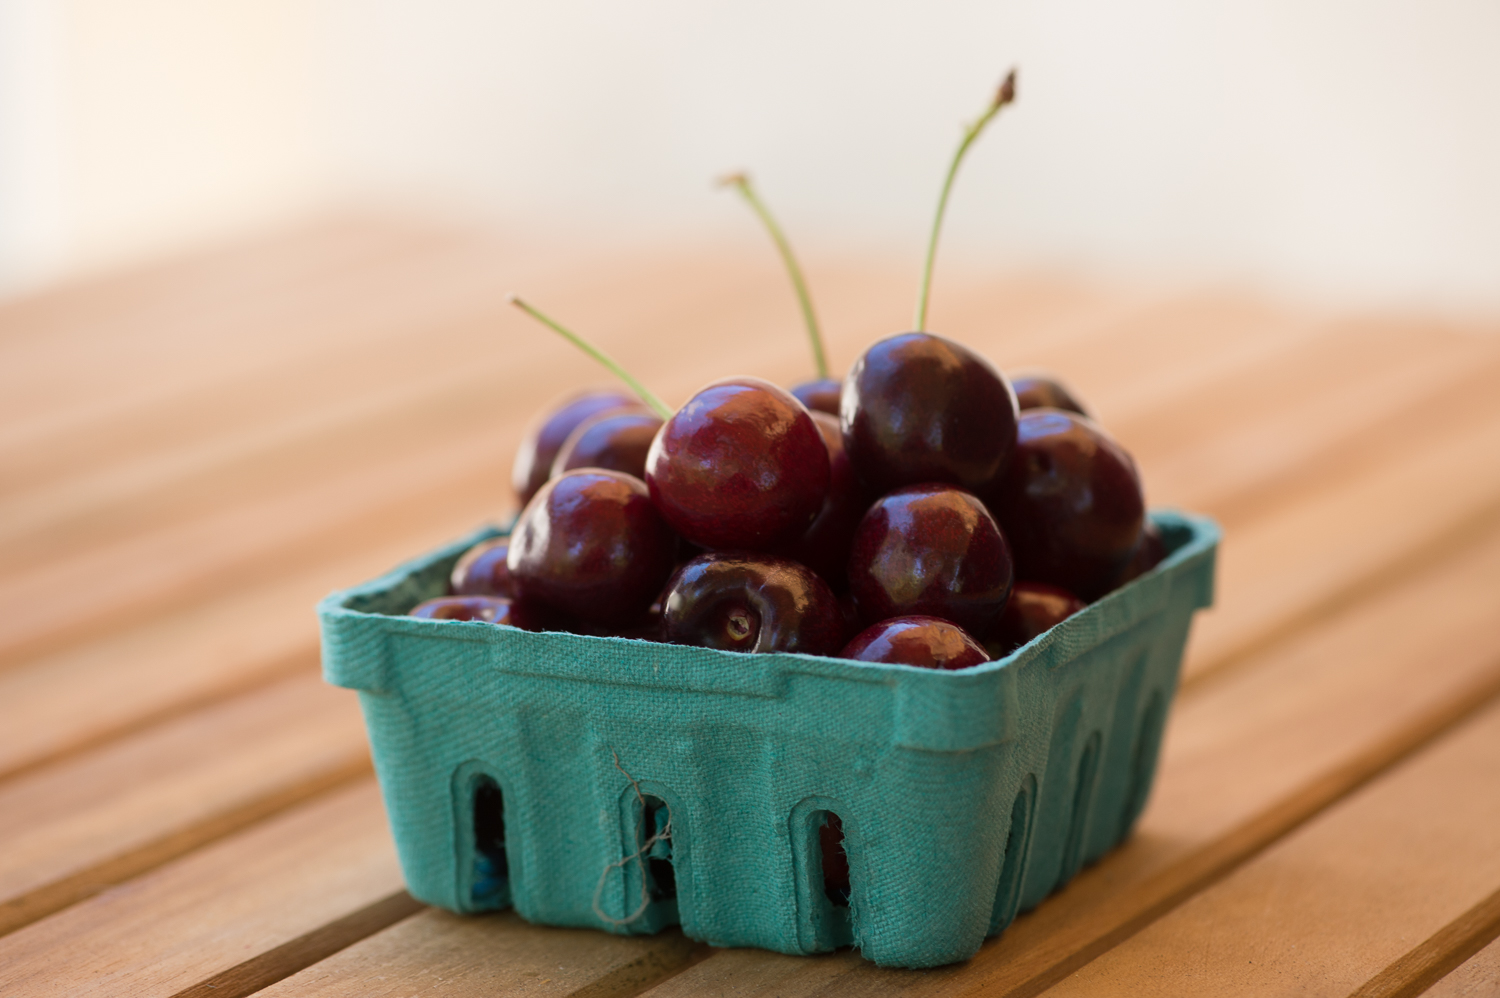 basket-of-cherries.jpg